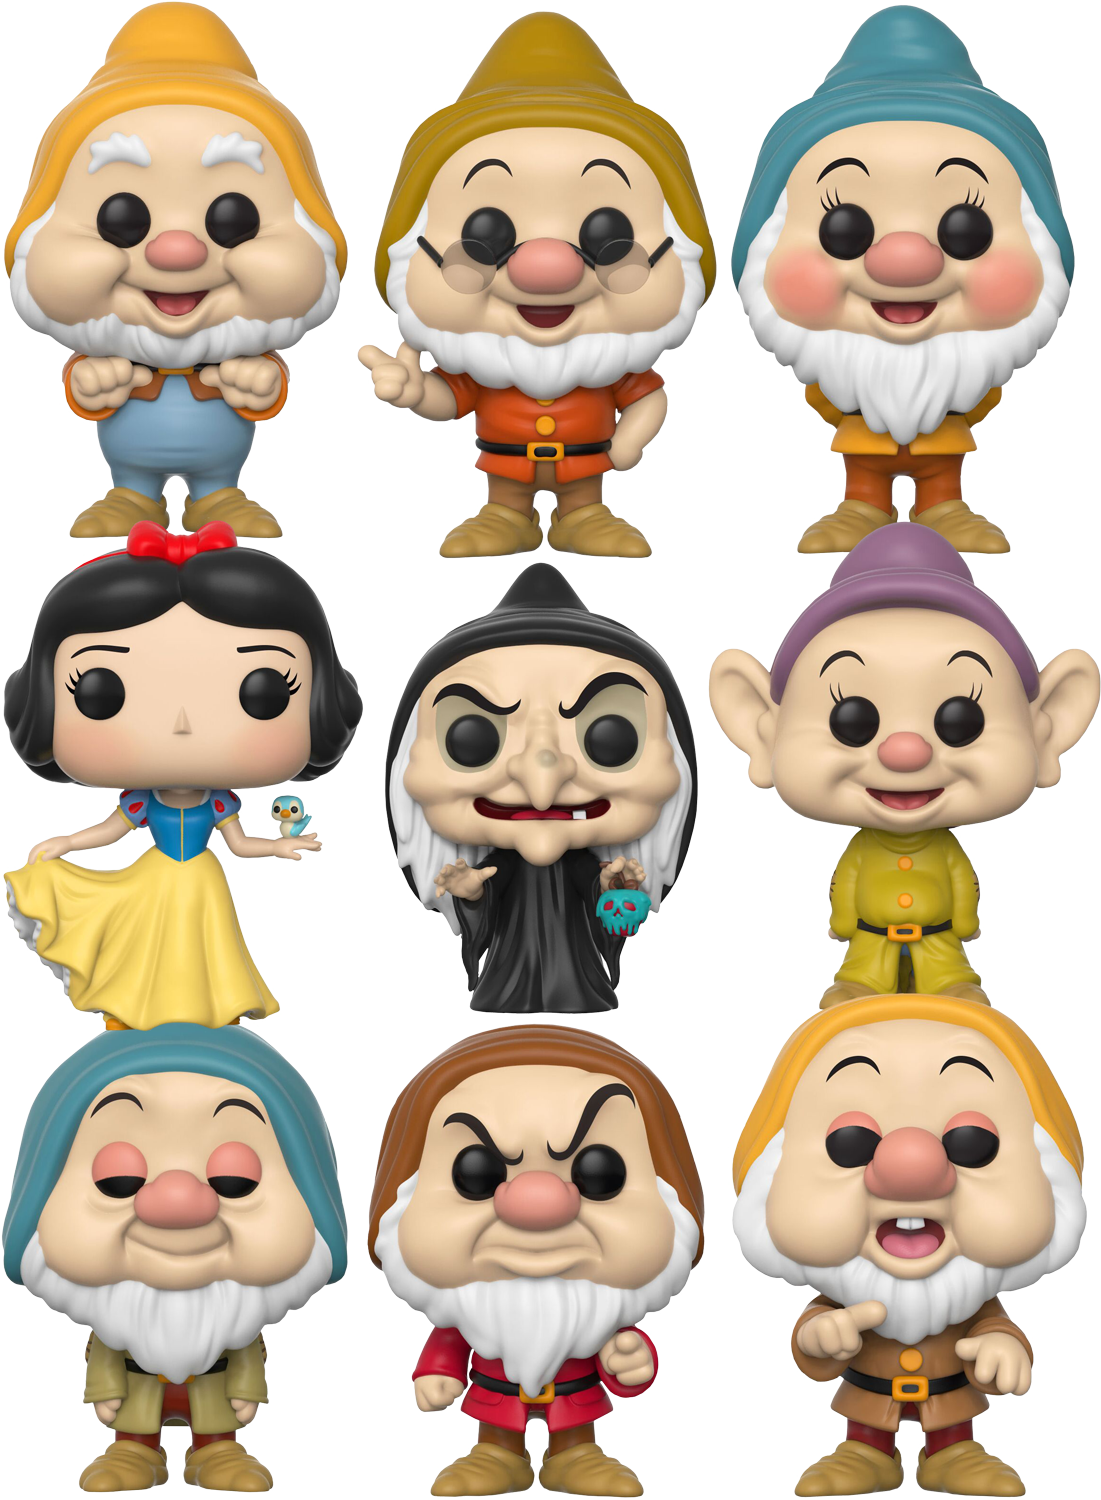 Snow white and the. Houses clipart seven dwarfs